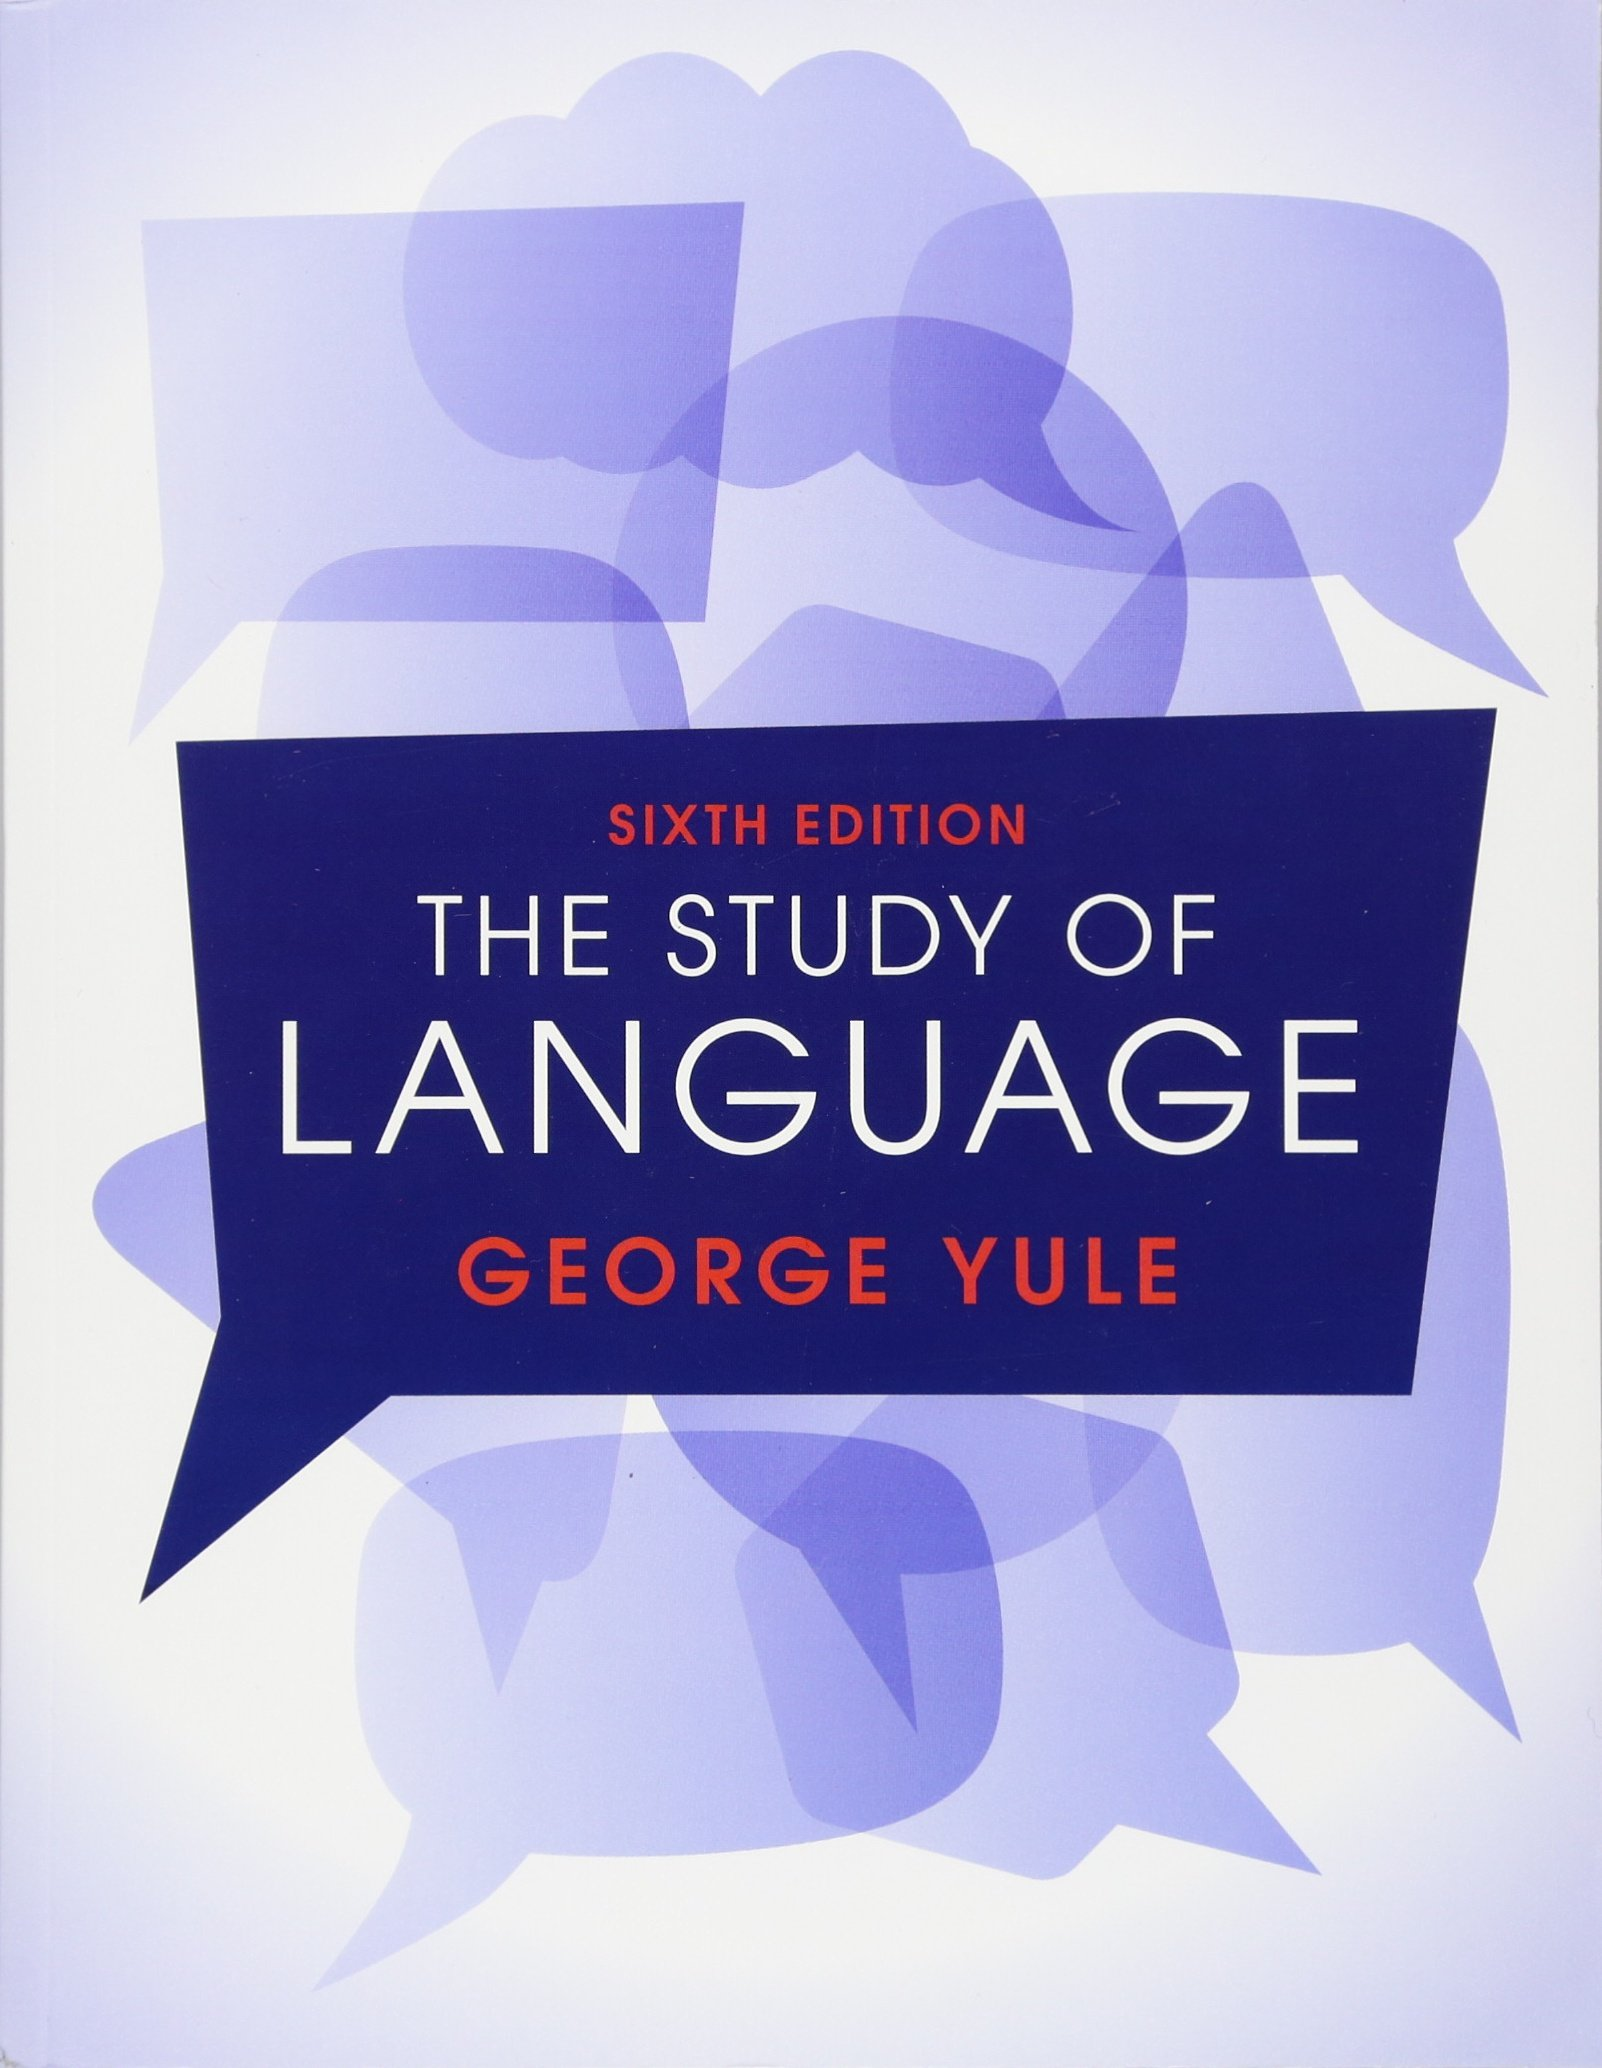 The Study of Language 6th Edition by Cambridge University Press